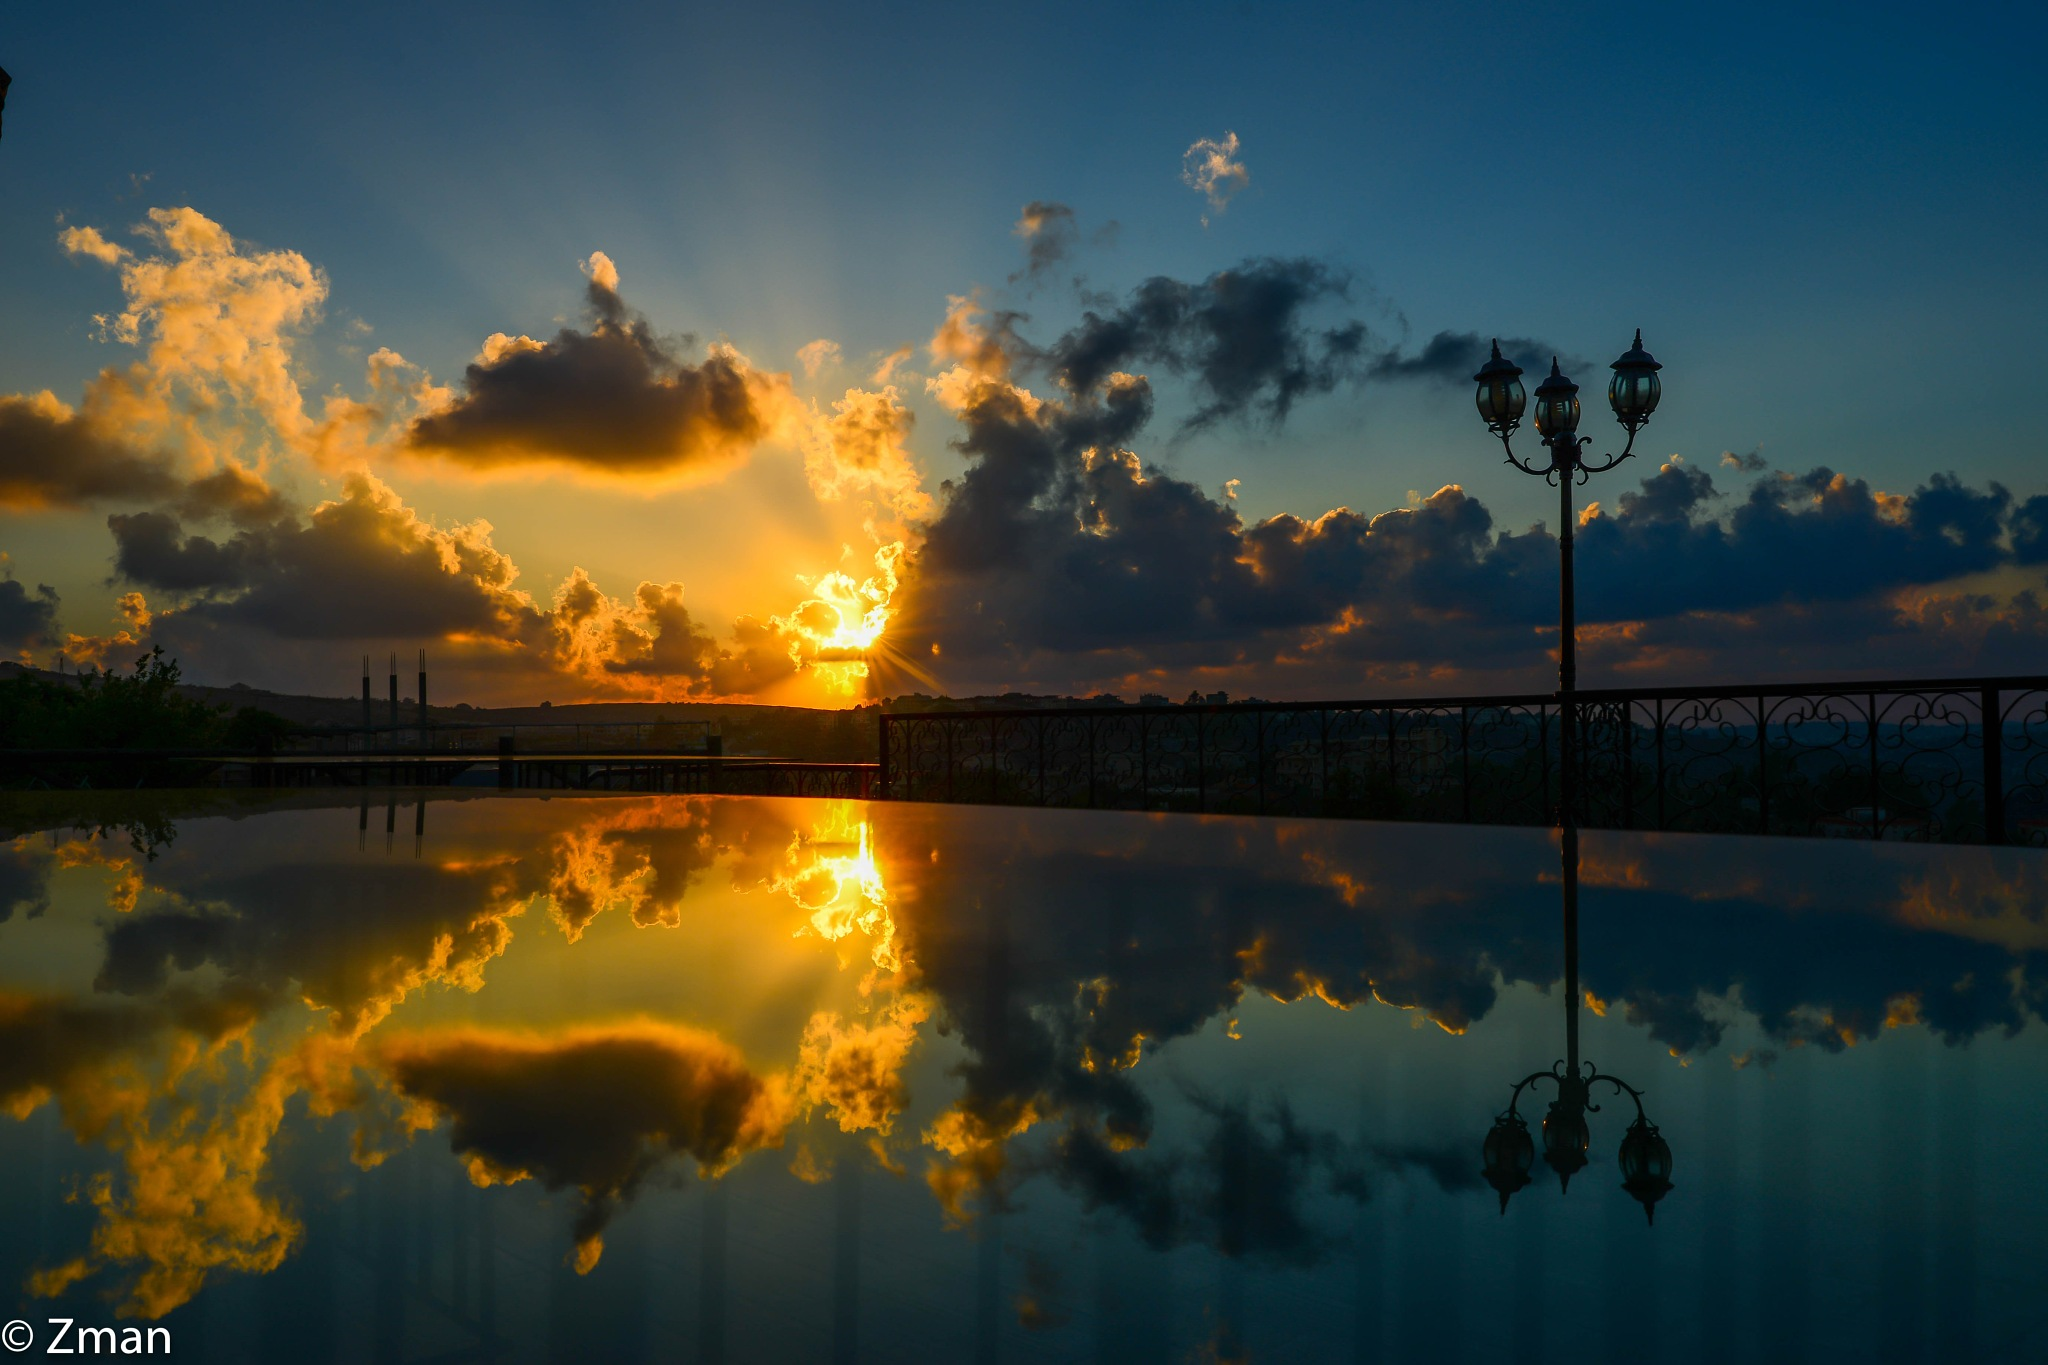 Reflections by muhammad.nasser.963